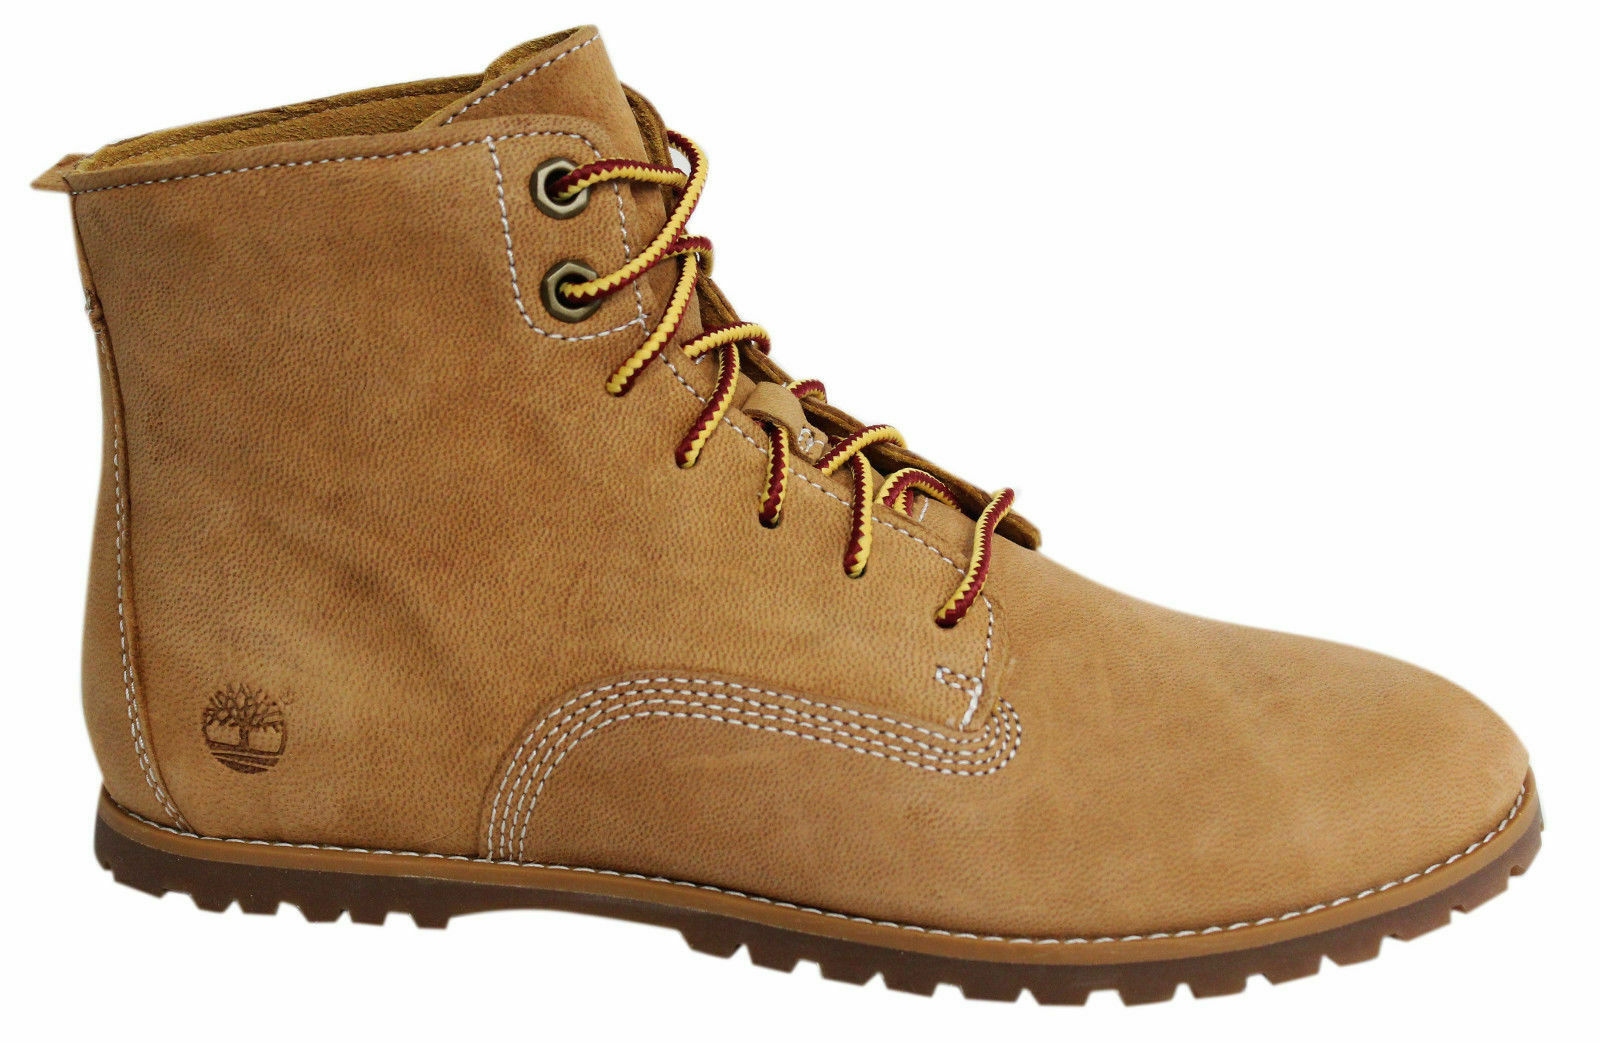 Details about Timberland Joslin Womens Chukka Boots Lace Up Shoes Wheat Leather A13HW B90E